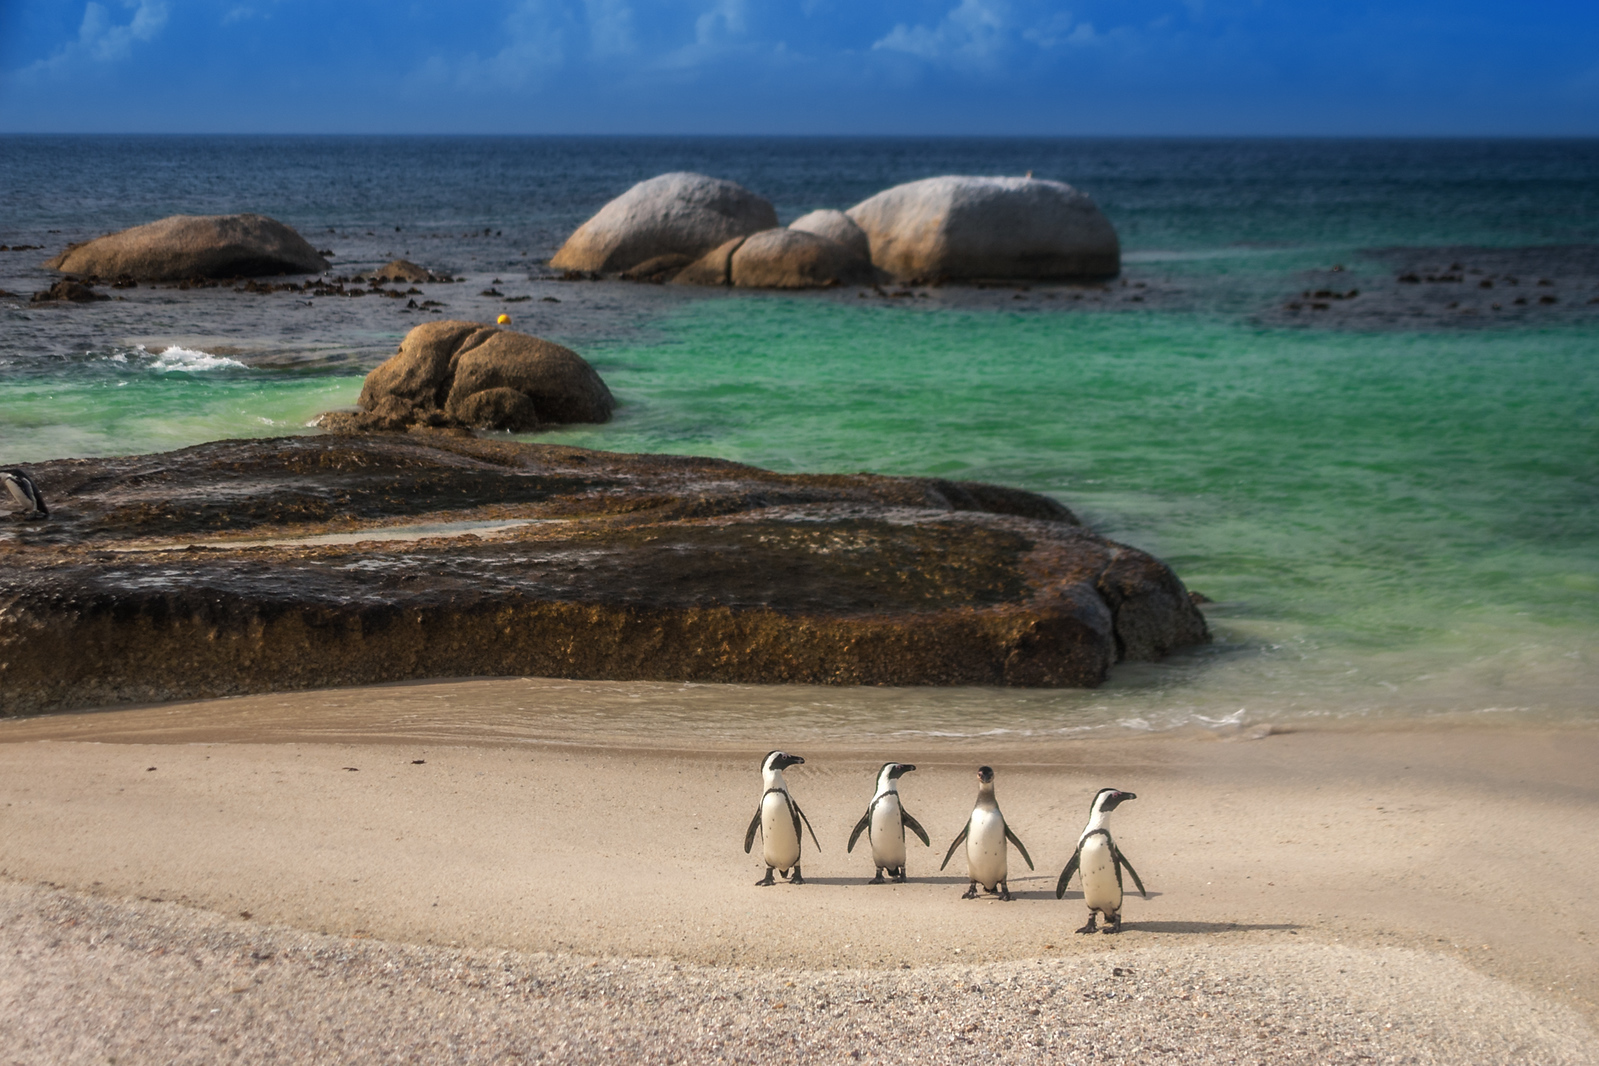 The Penguins of Simon's Town, South Africa wildlife